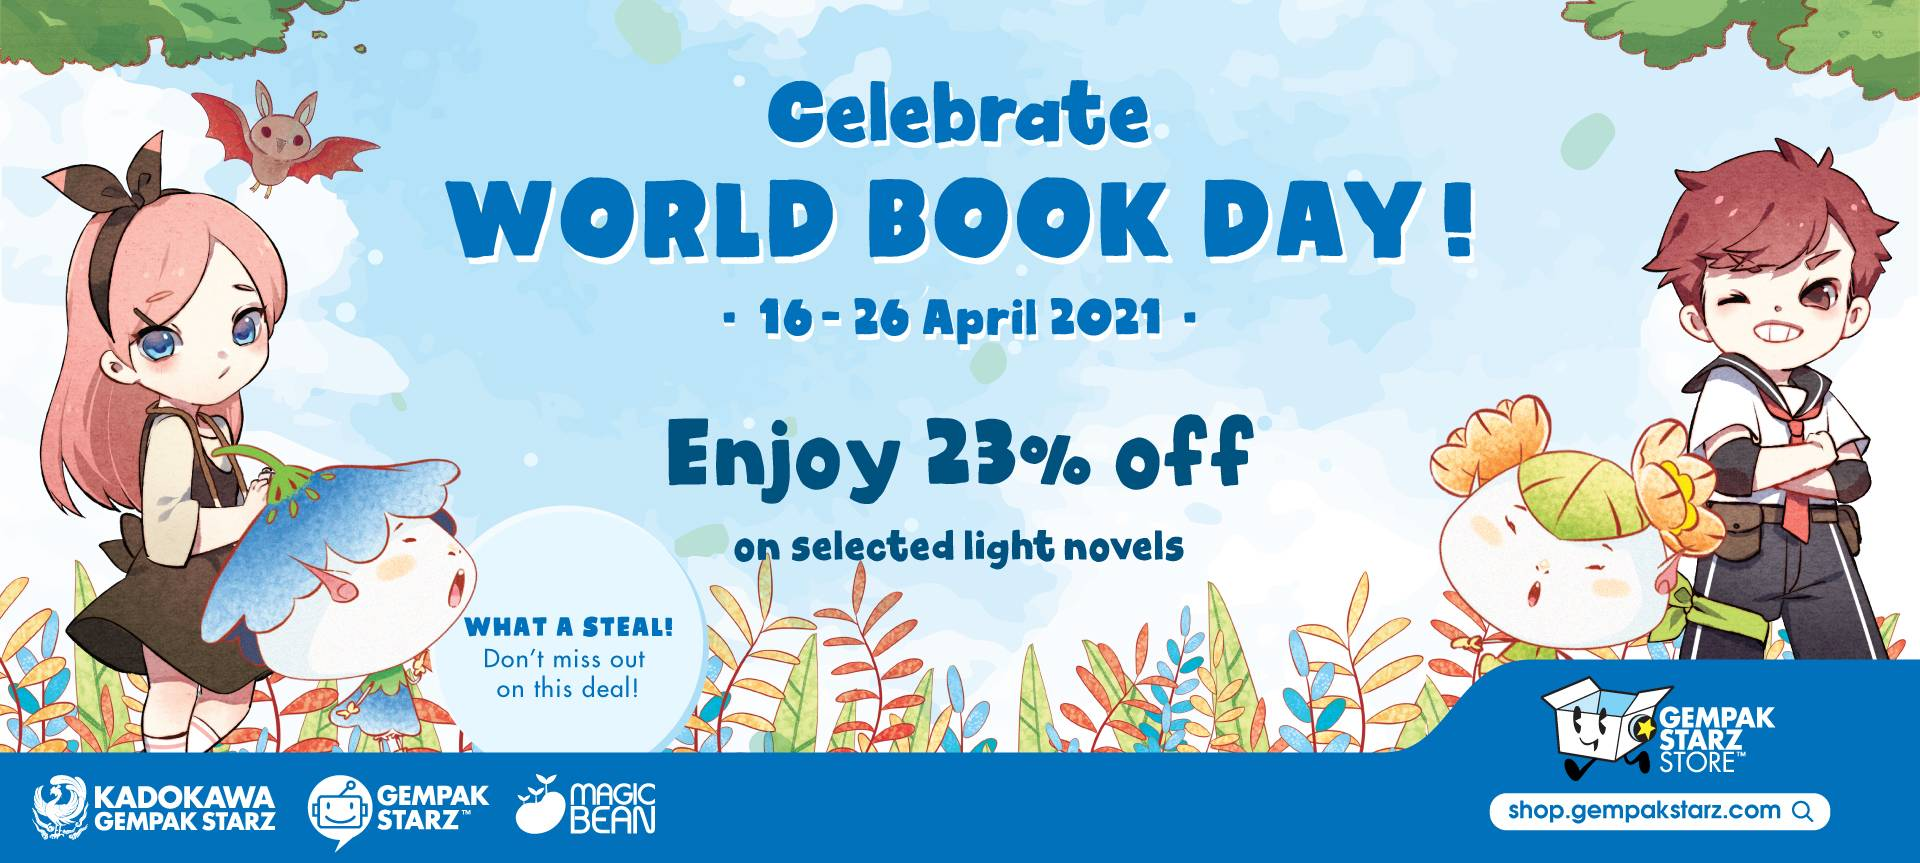 World Book Day Celebration